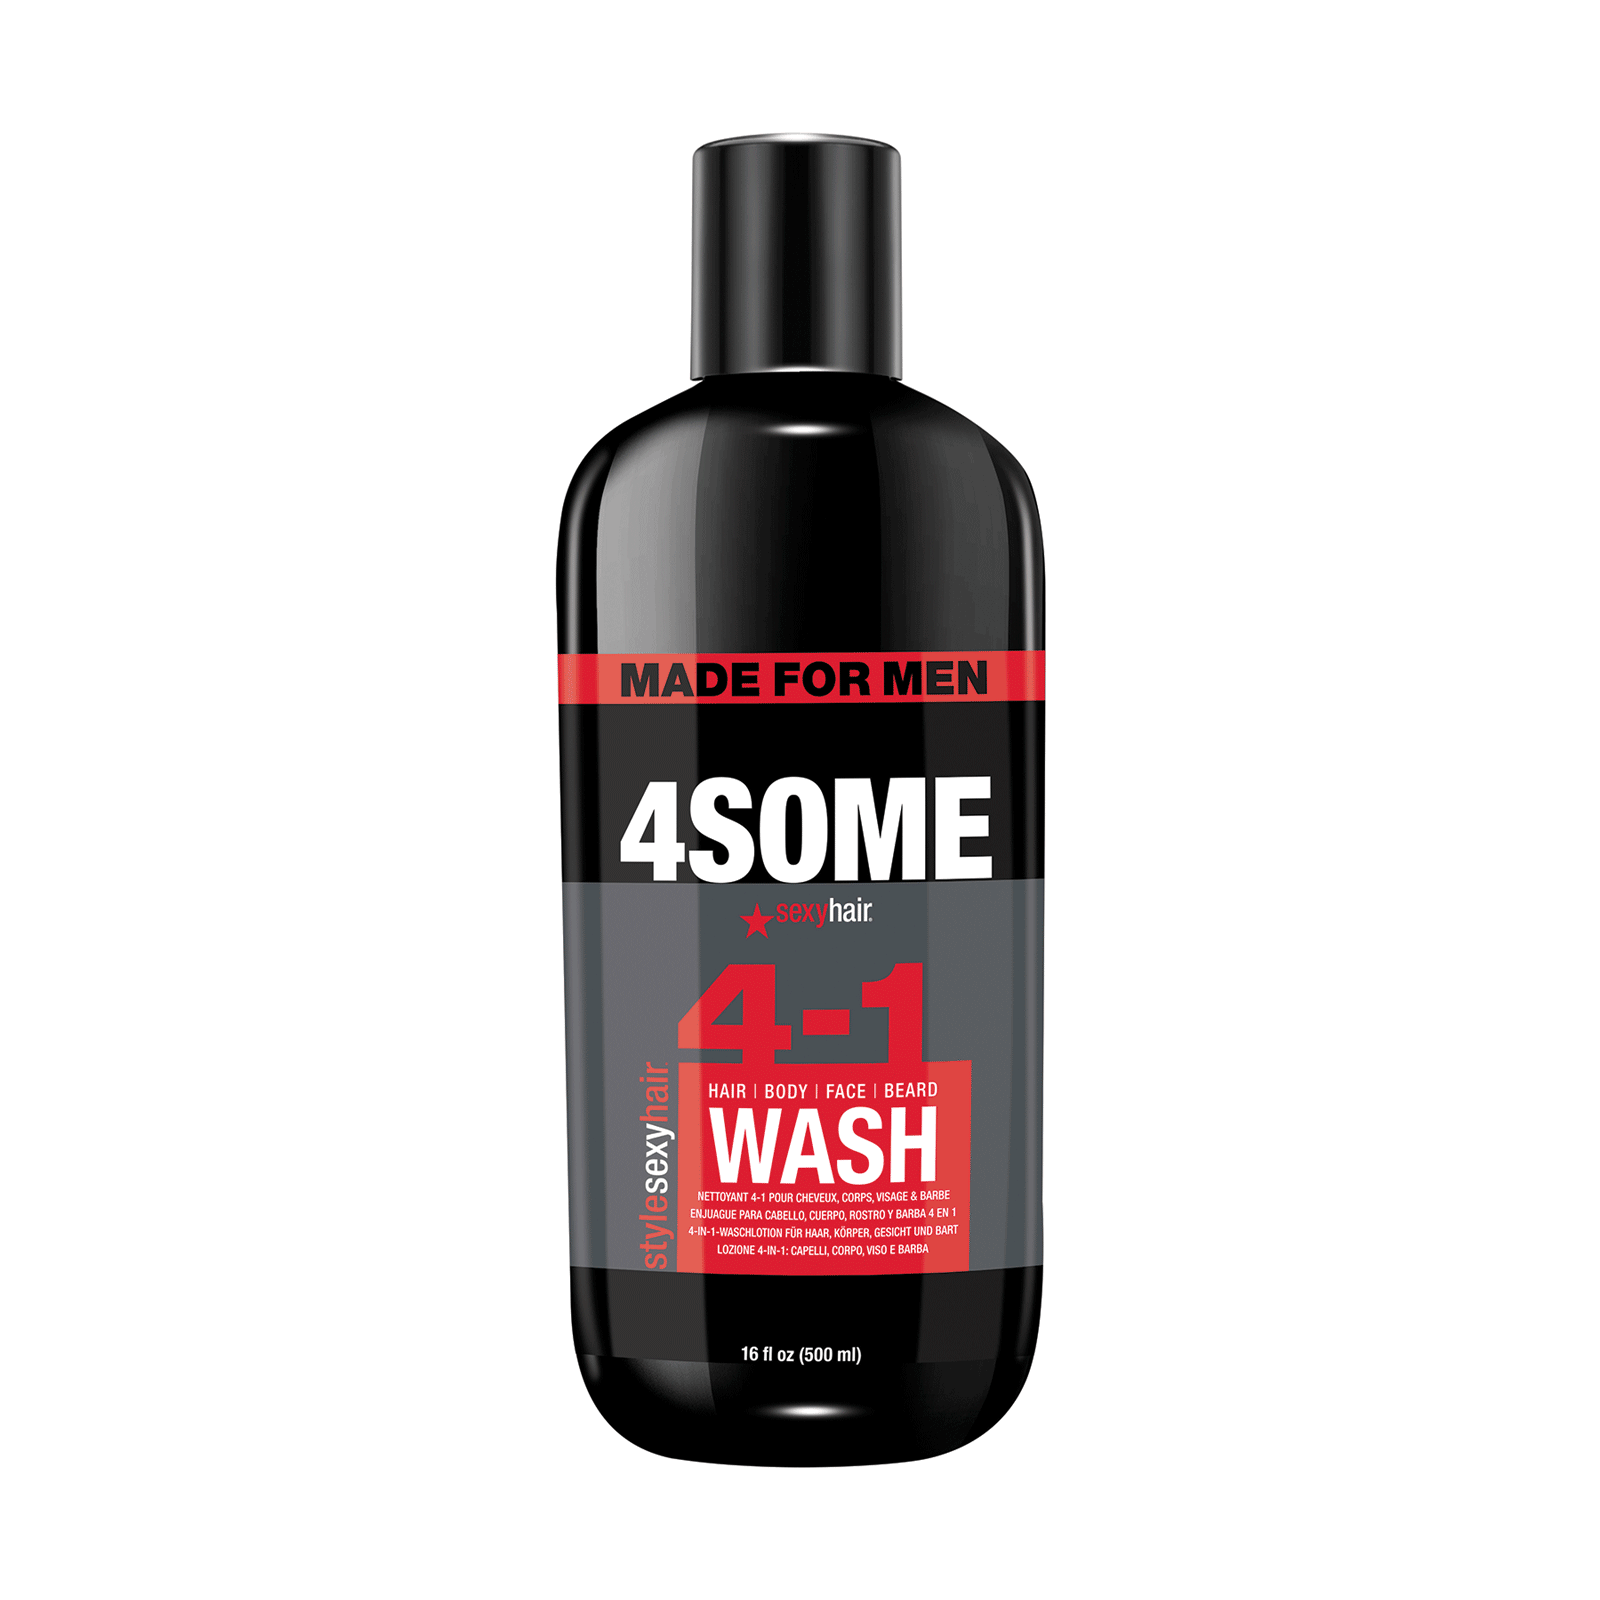 4Some Hair, Body, Face & Beard Wash